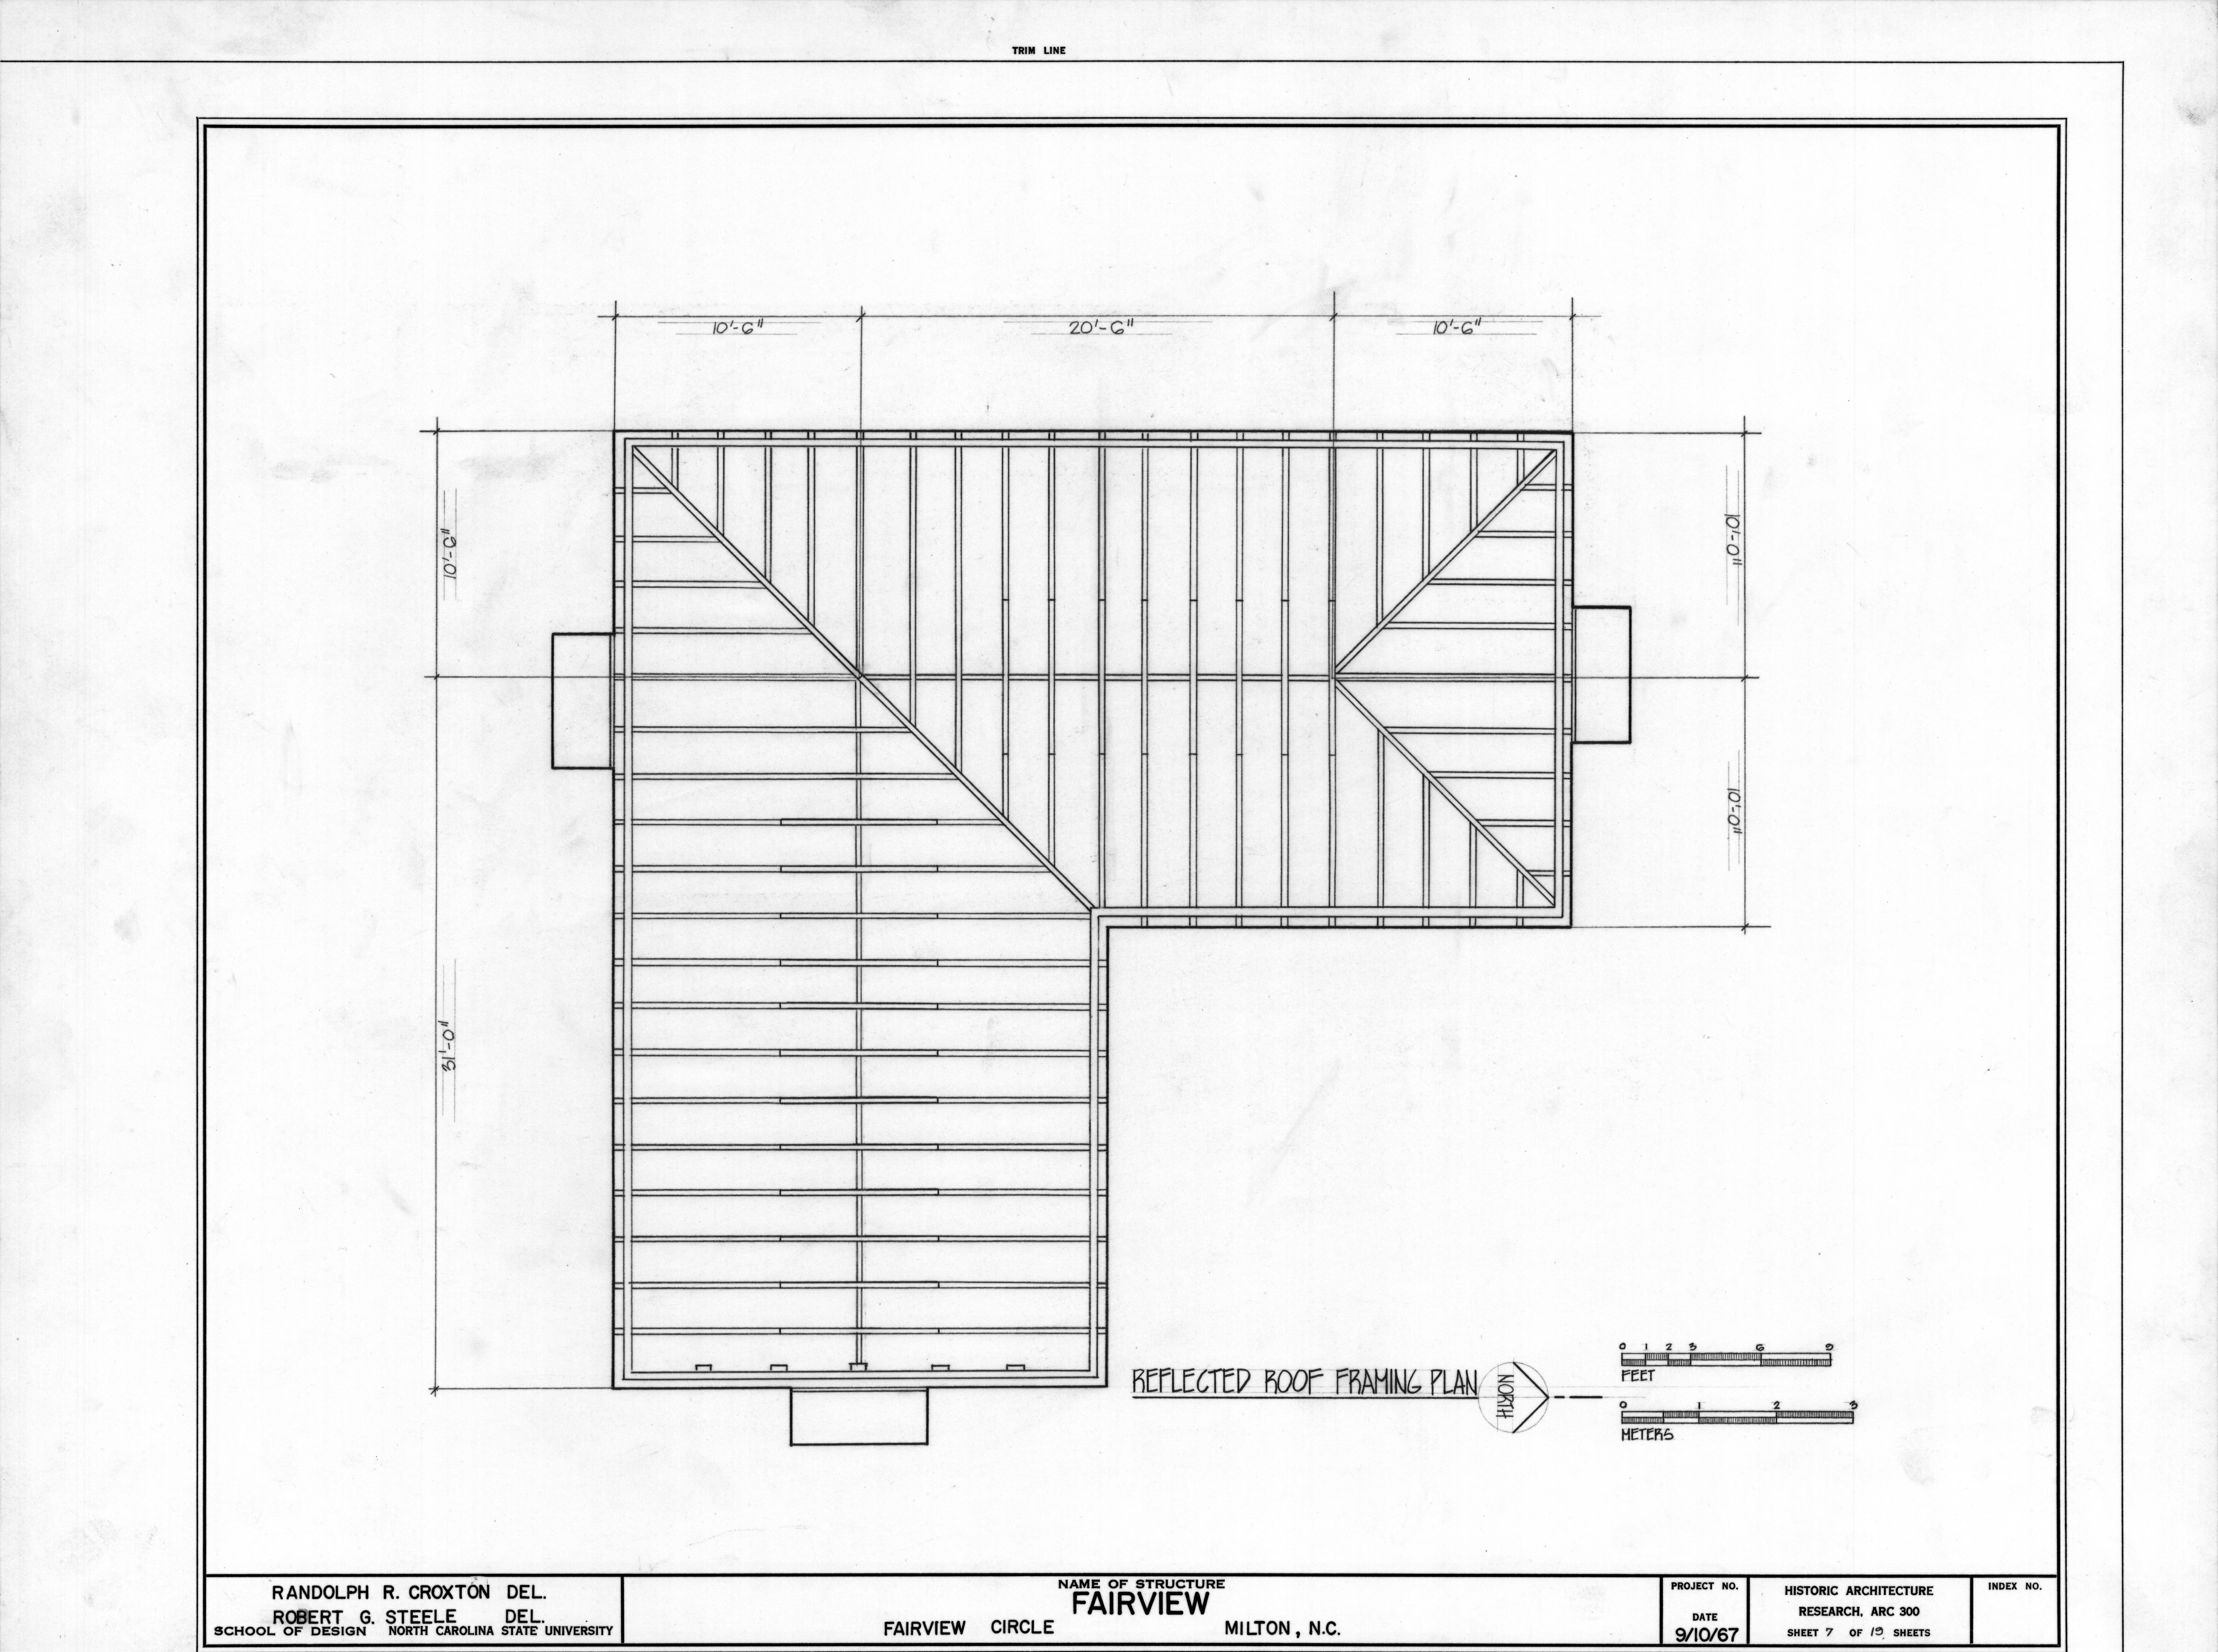 Roof framing plan asa thomas house milton north for House frame design